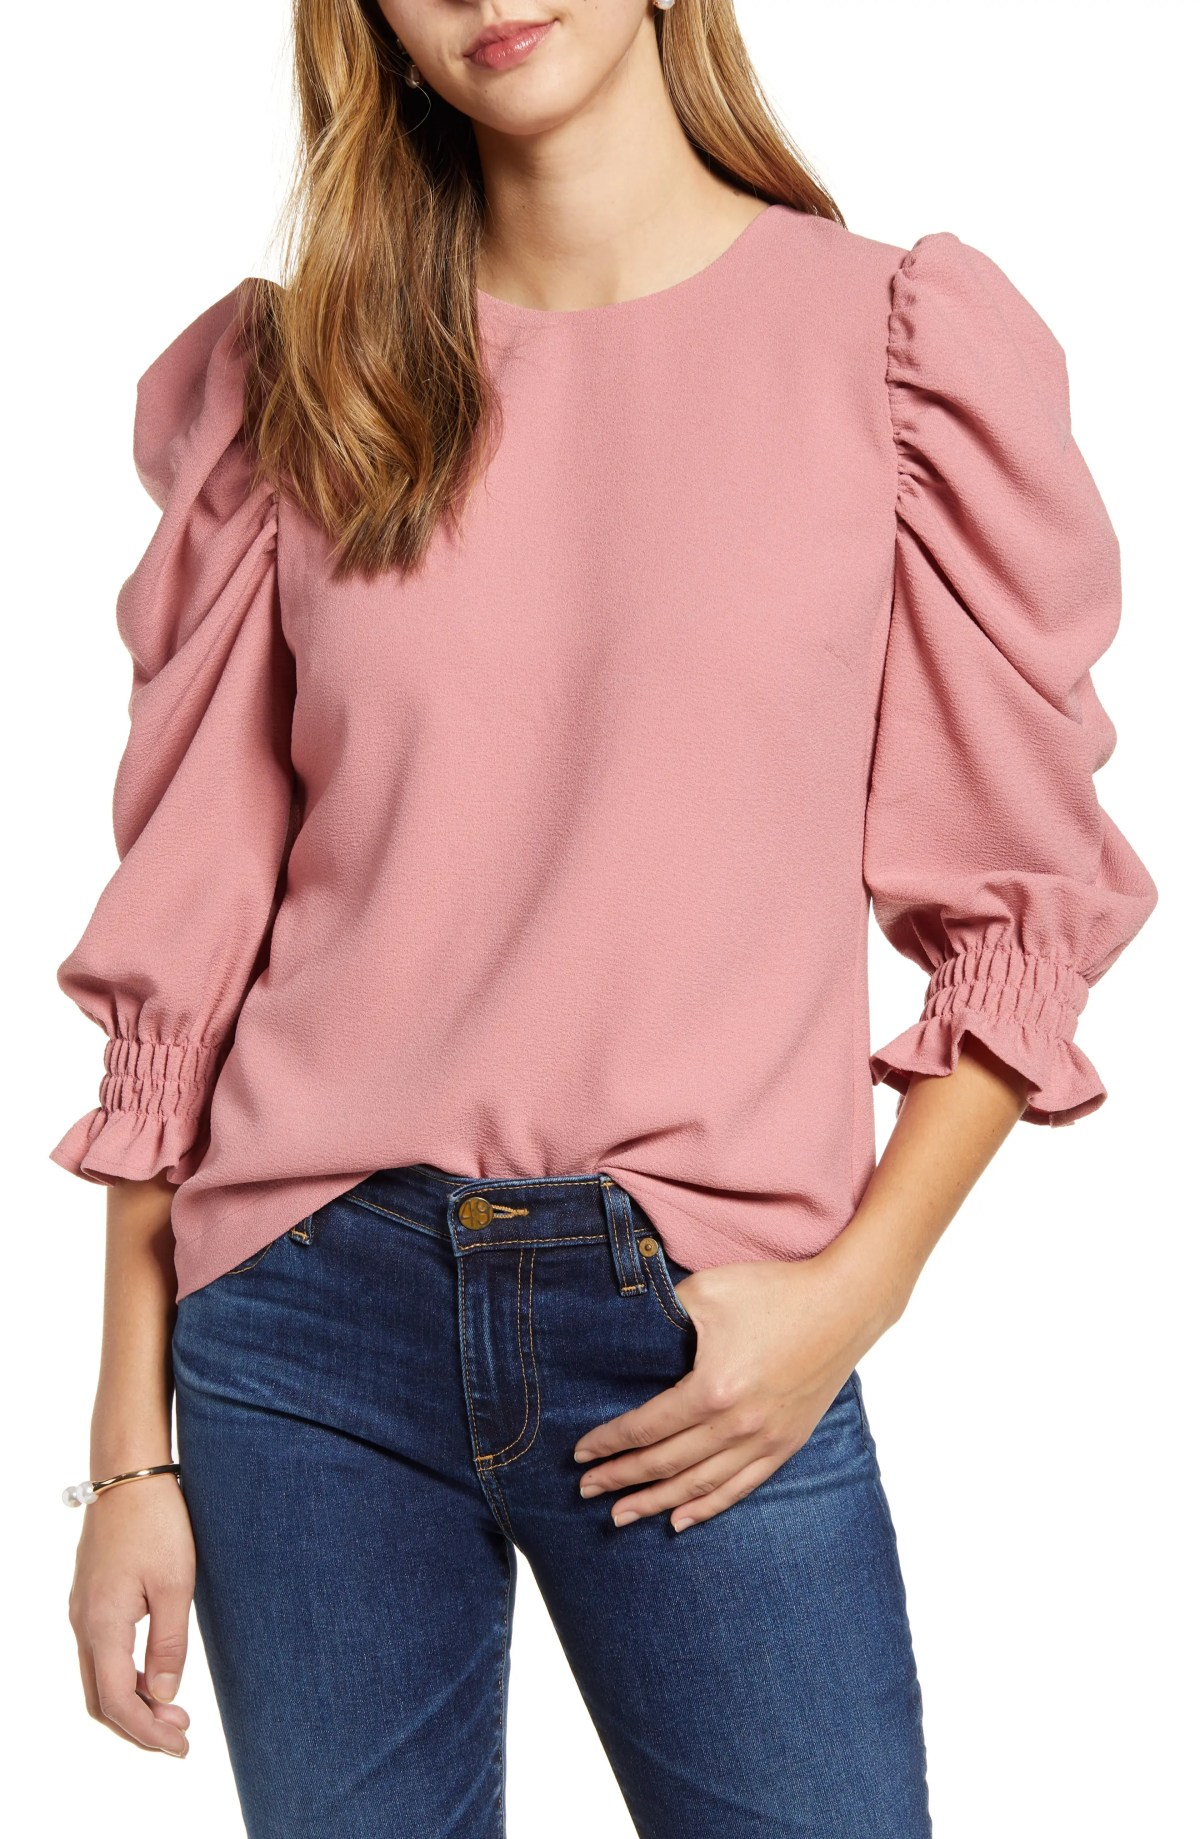 RACHEL PARCELL Puff Sleeve Top, Main, color, PINK COMPACT